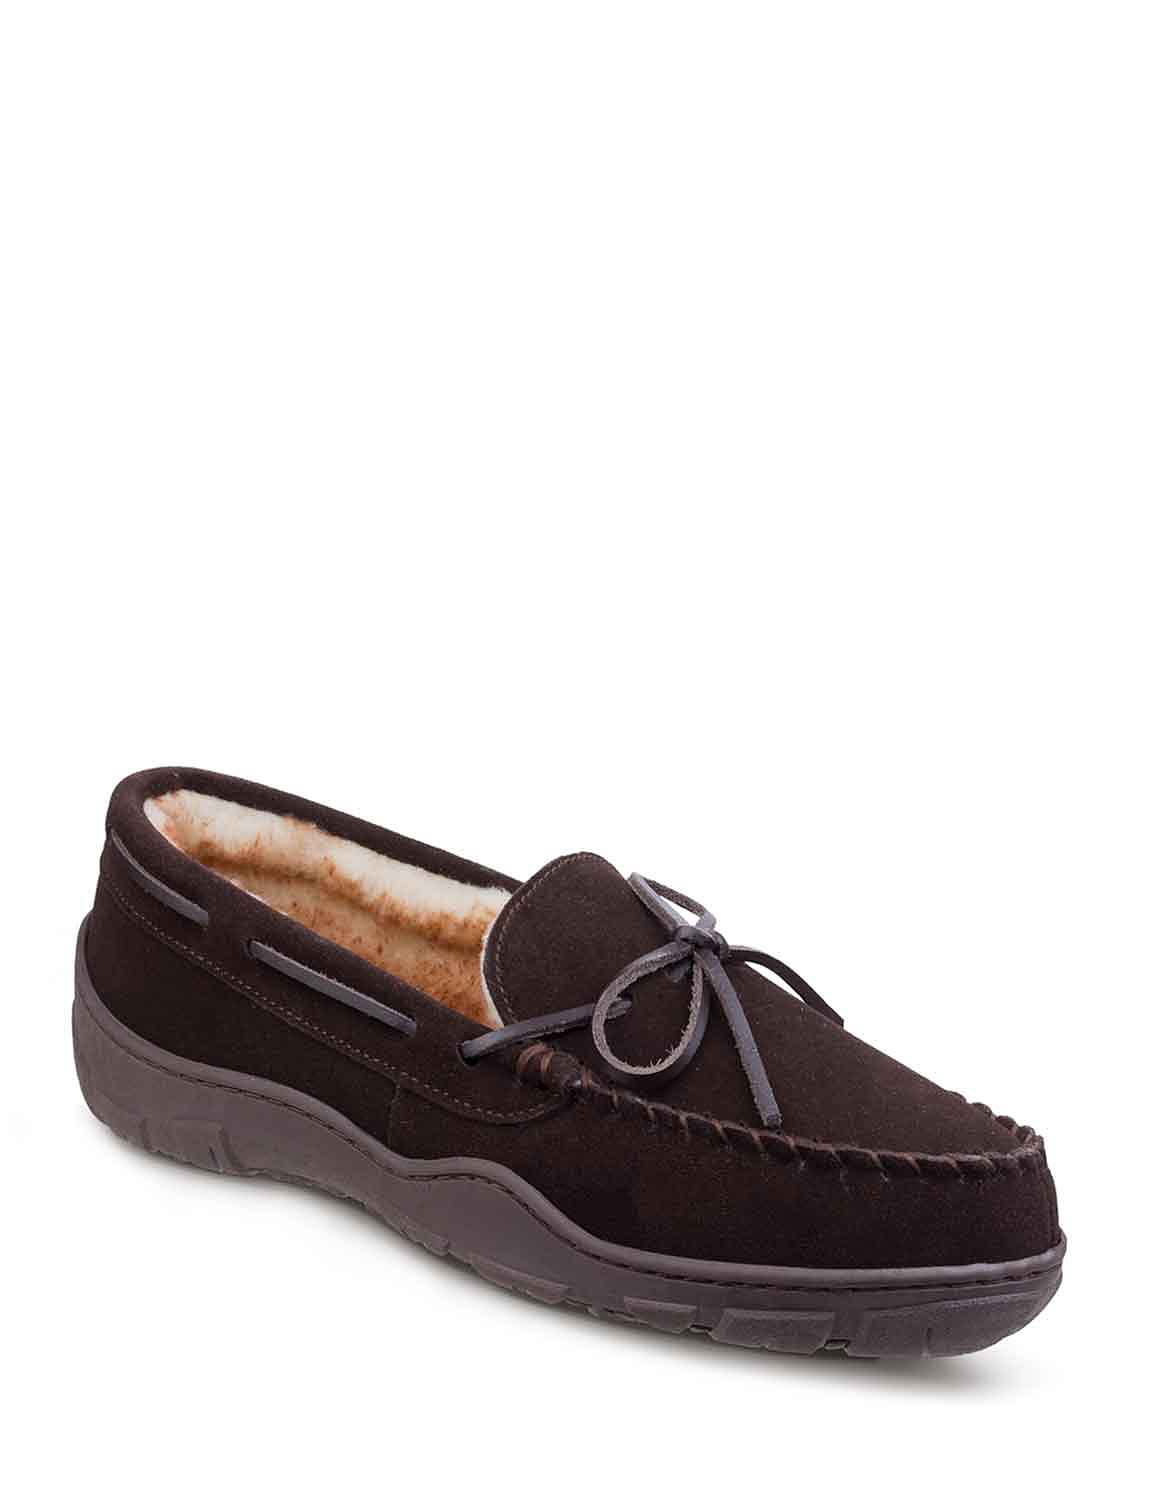 Cotswold Real Suede Slipper With Outdoor Sole And Thermal Lining - Brown